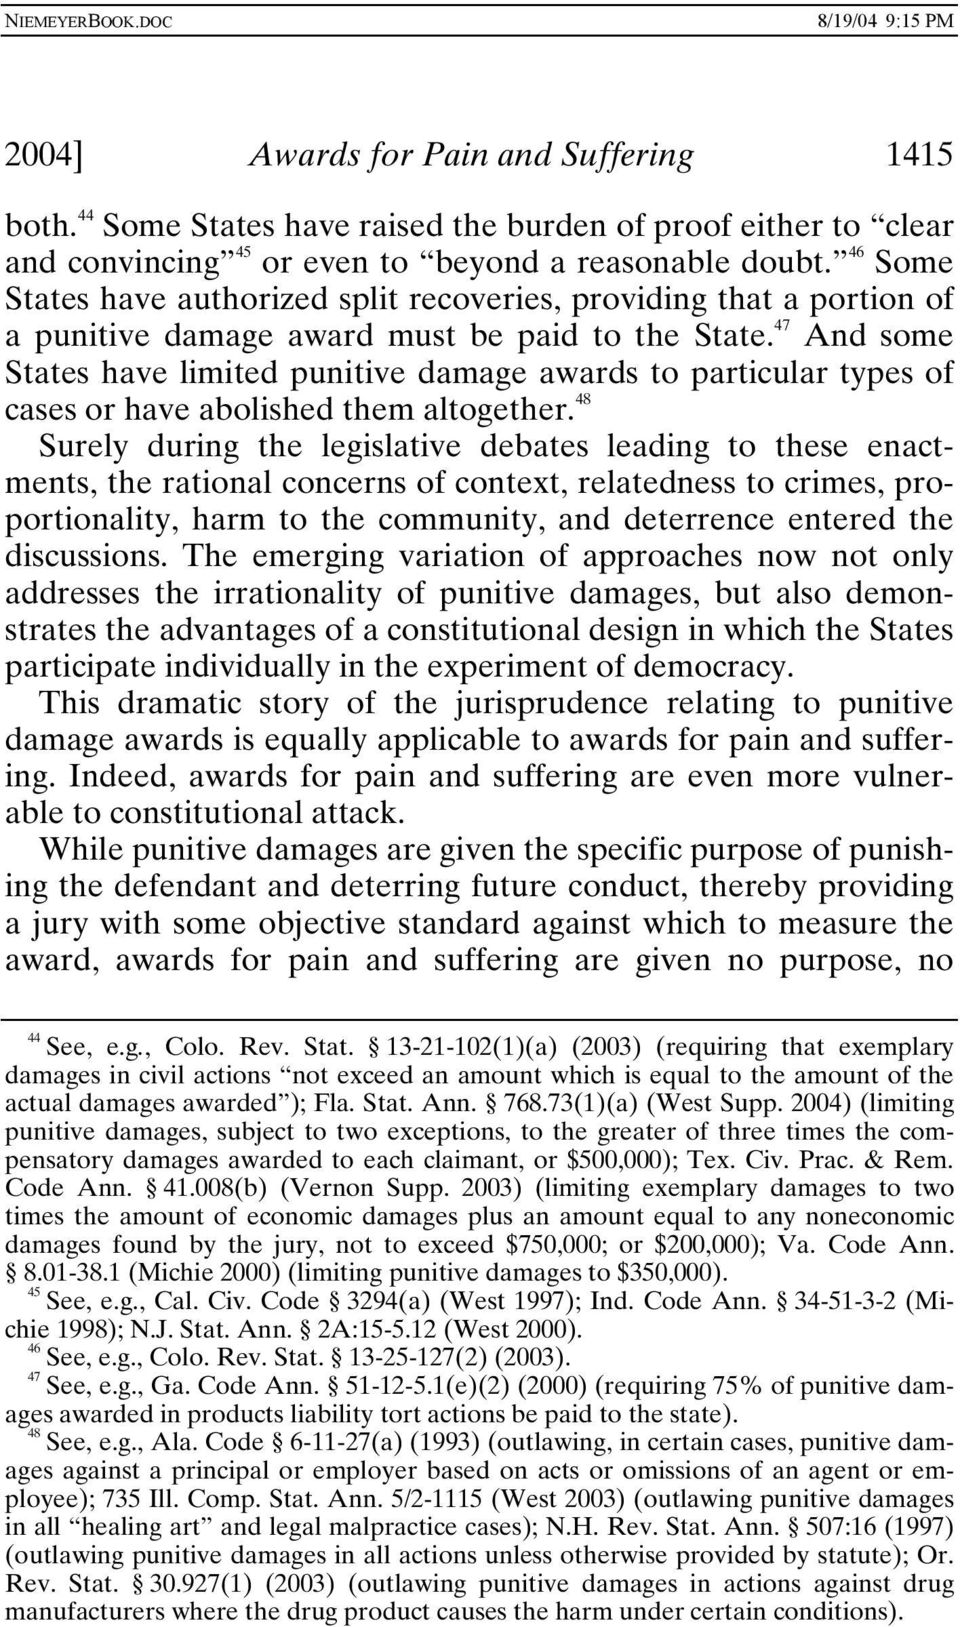 47 And some States have limited punitive damage awards to particular types of cases or have abolished them altogether.